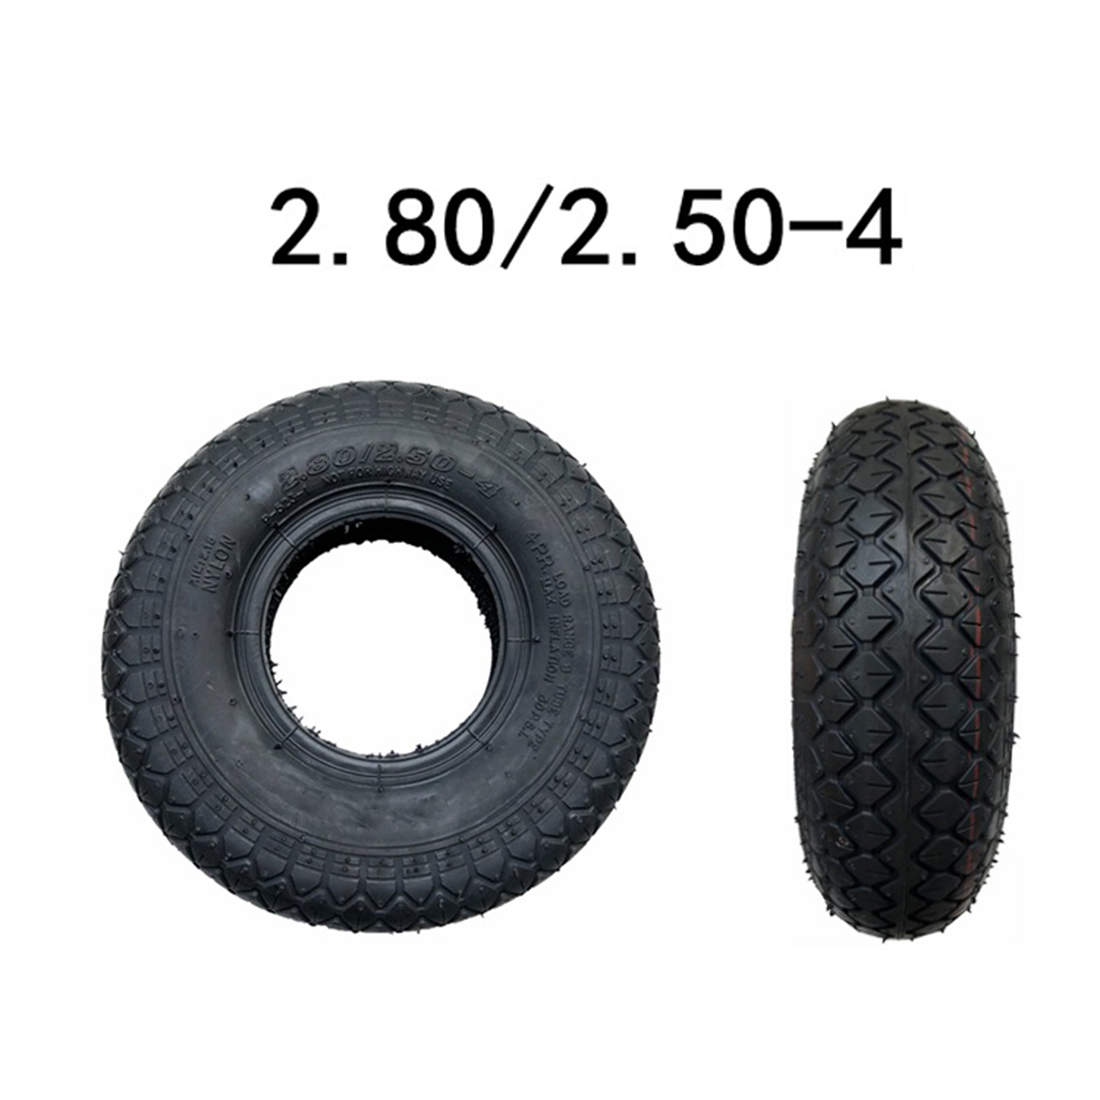 9 Inch <font><b>2.80/2.50</b></font>-<font><b>4</b></font> Thick Tire / Inner Tube For Elderly Electric Scooter Fine Workmanship Solid No Flats Tire image